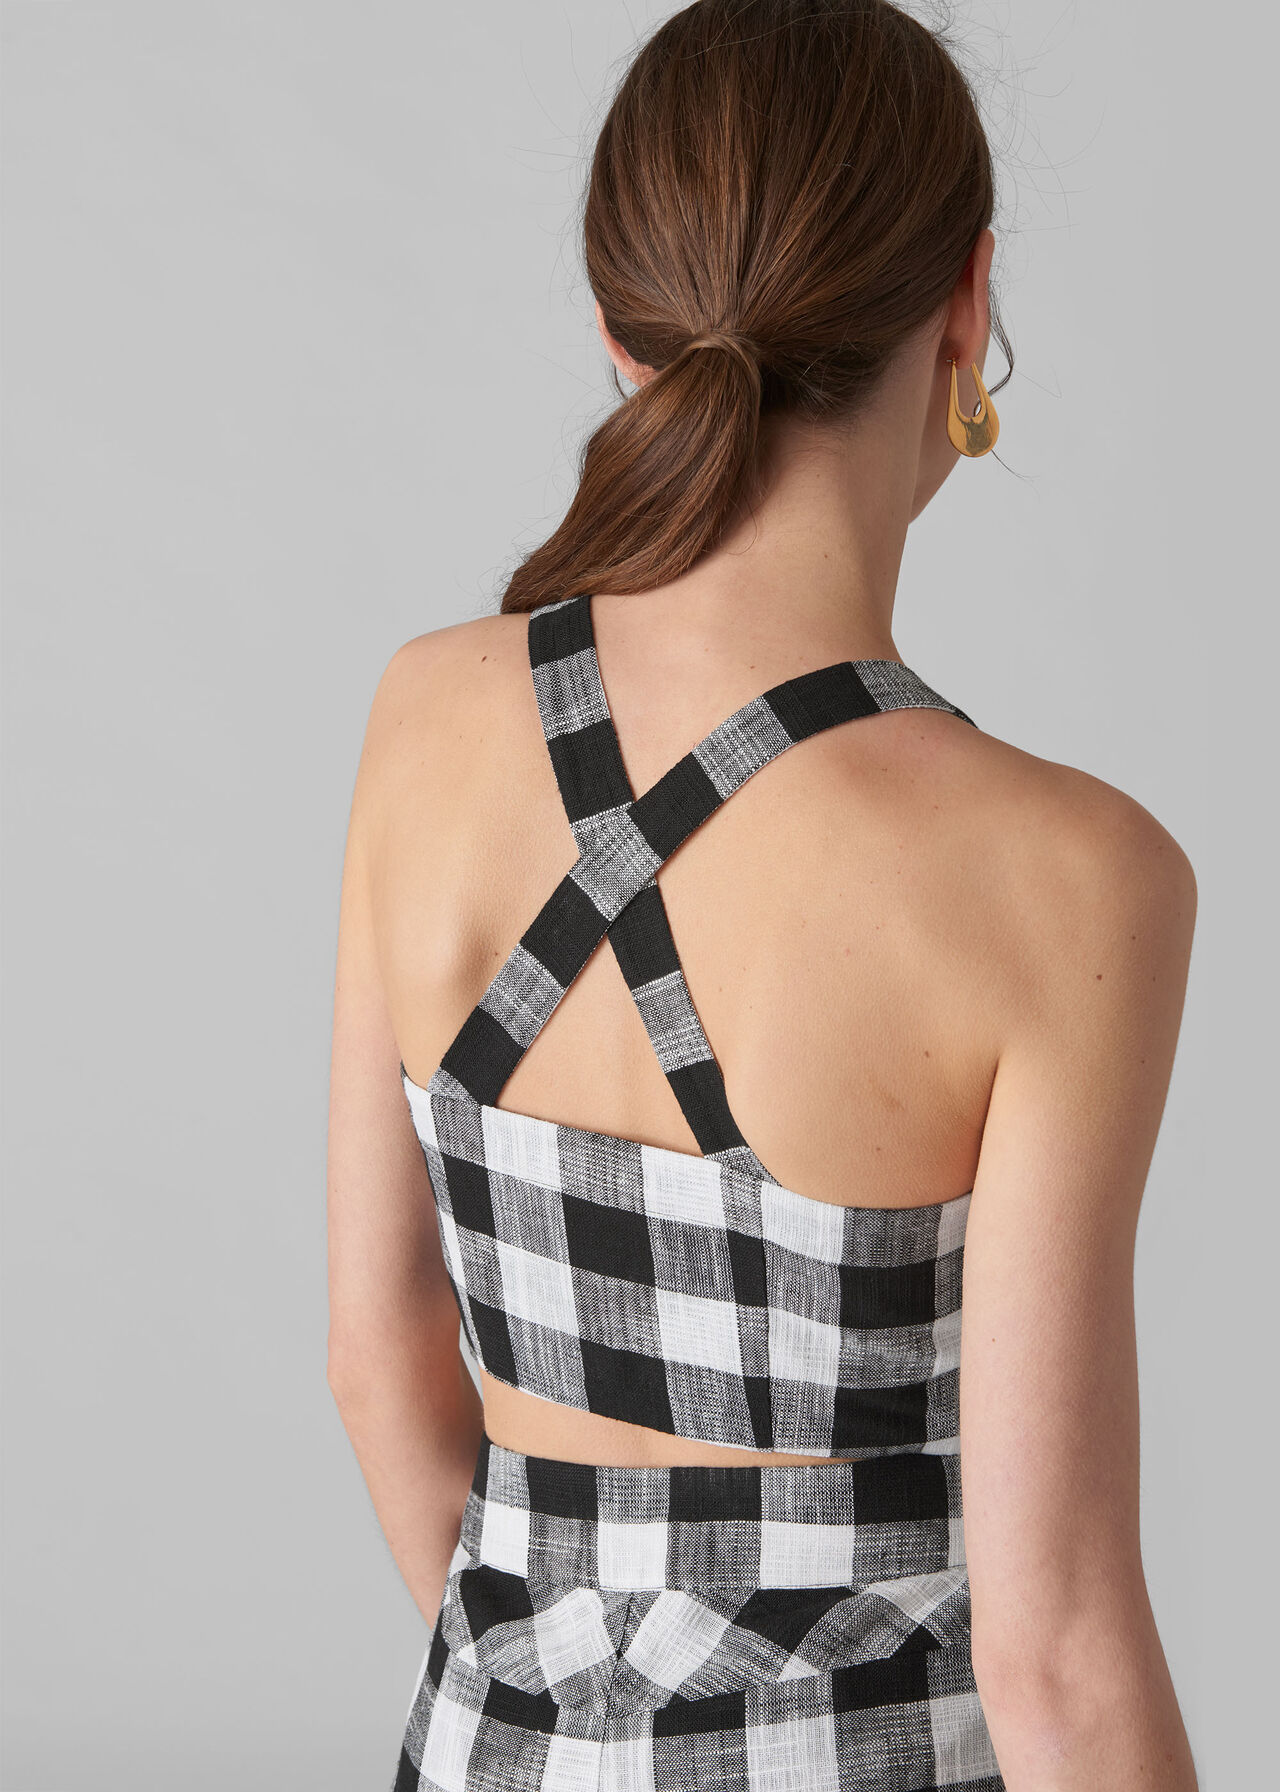 Gingham Button Up Bralette Black and White